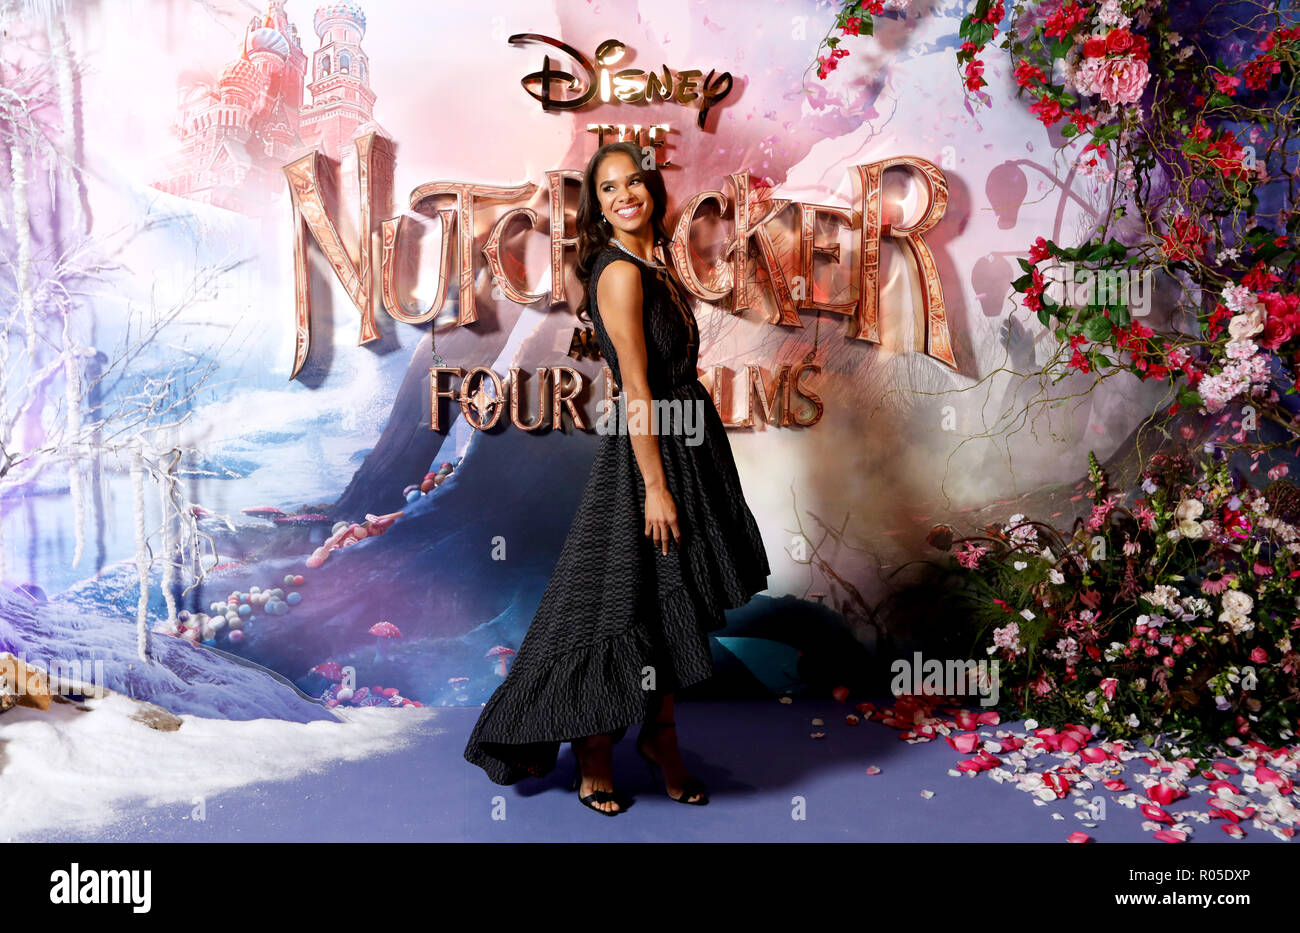 Misty Copeland attending the European Premiere of The Nutcracker and the Four Realms held at the Vue, Westfield London. - Stock Image